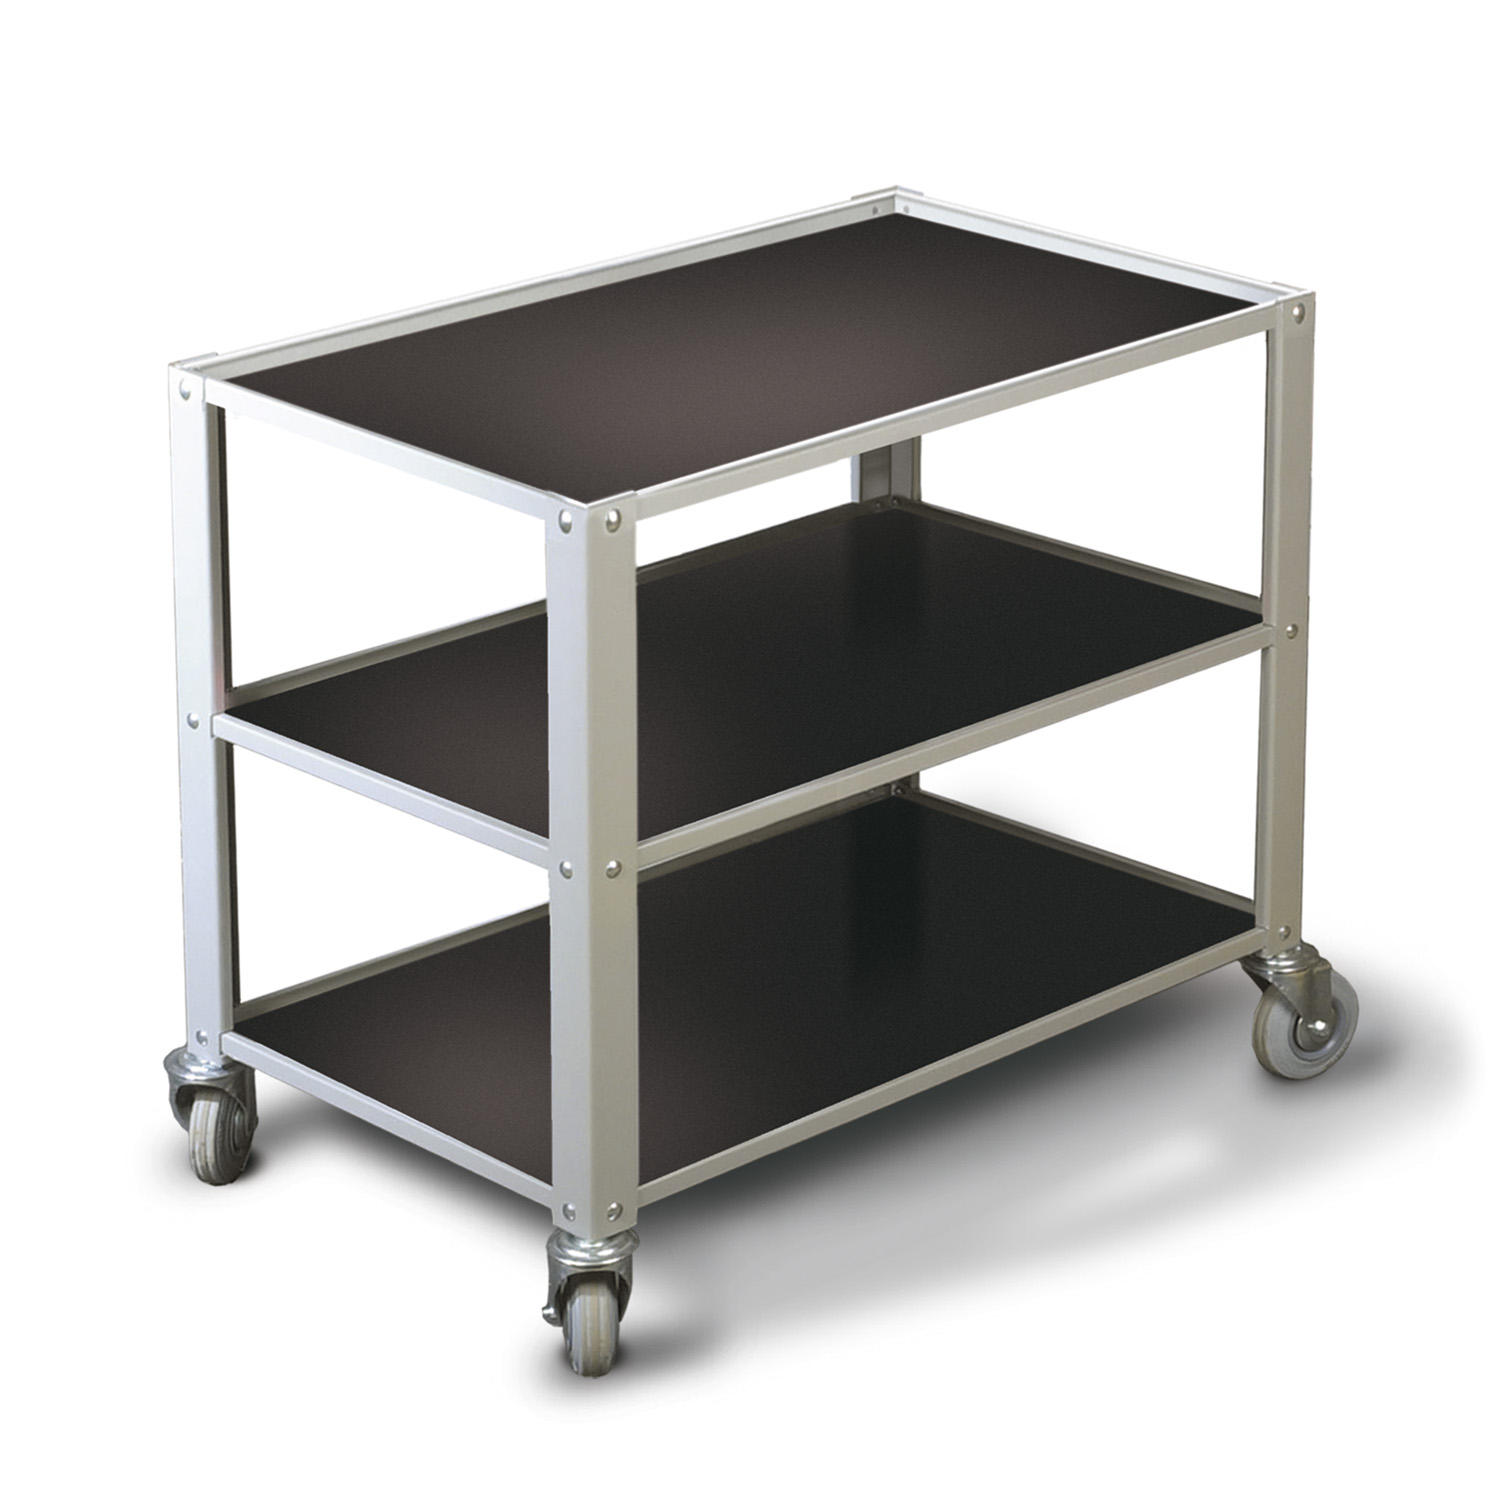 Under-bench trolley (650mm / 3 shelves)